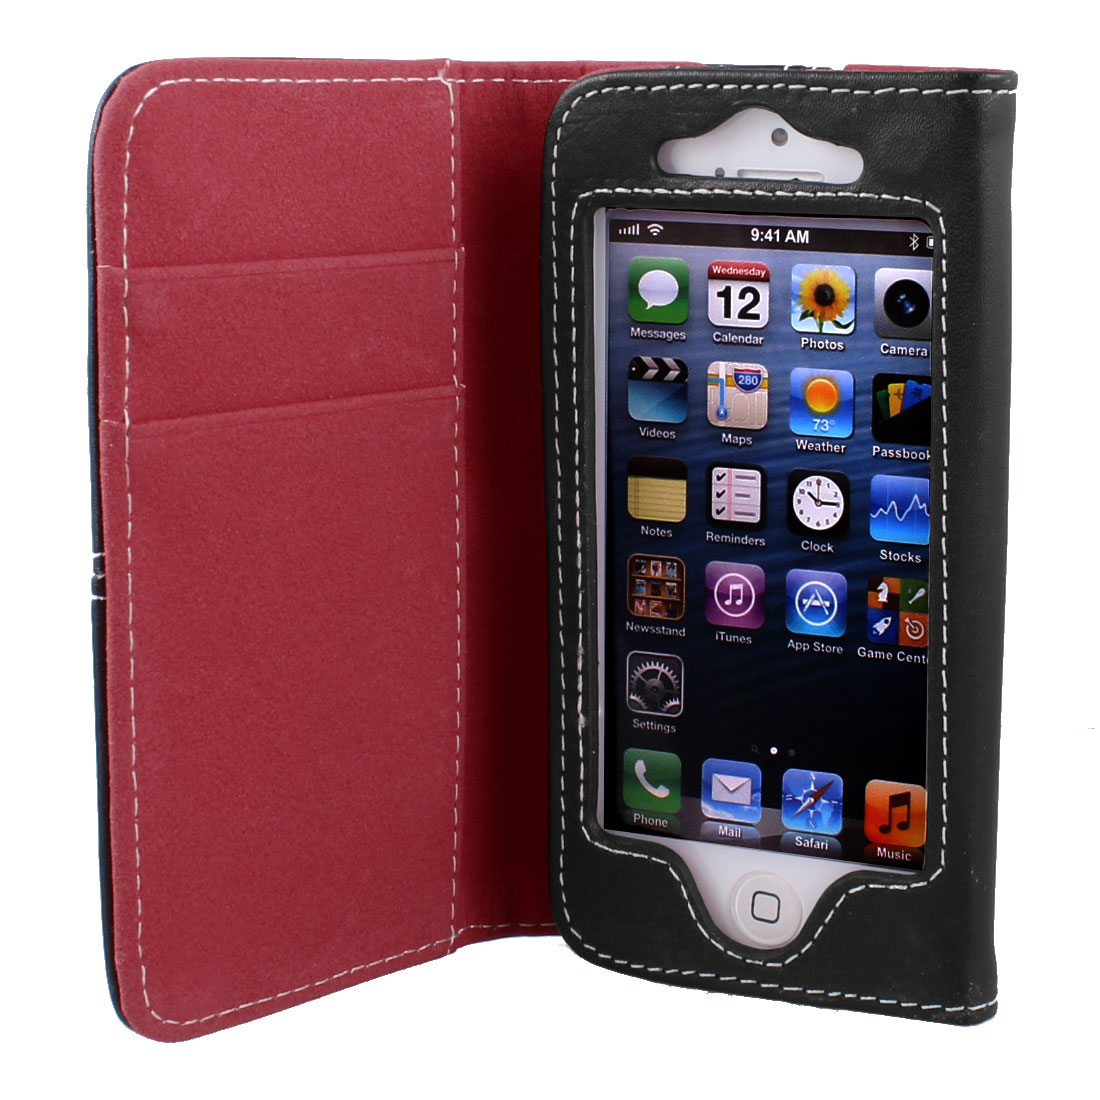 Red Black Faux Leather Flip Case Cover Pouch Protector for Apple iPhone 5 5G